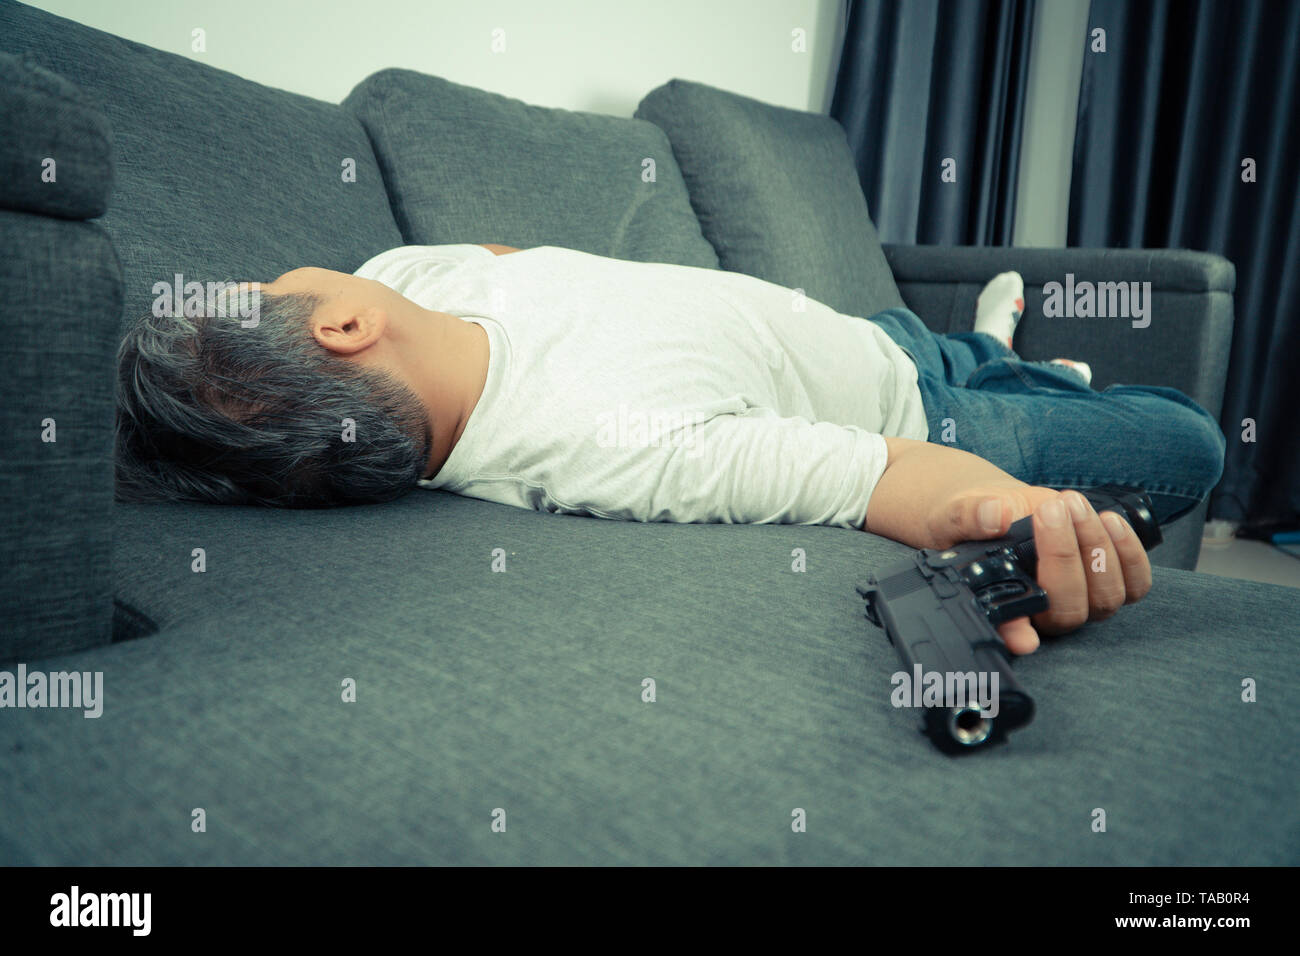 Middle-aged Asian man 40 years old hold gun in his hand and lying on the sofa in his house. Simulate the situation of people who have stress from work Stock Photo